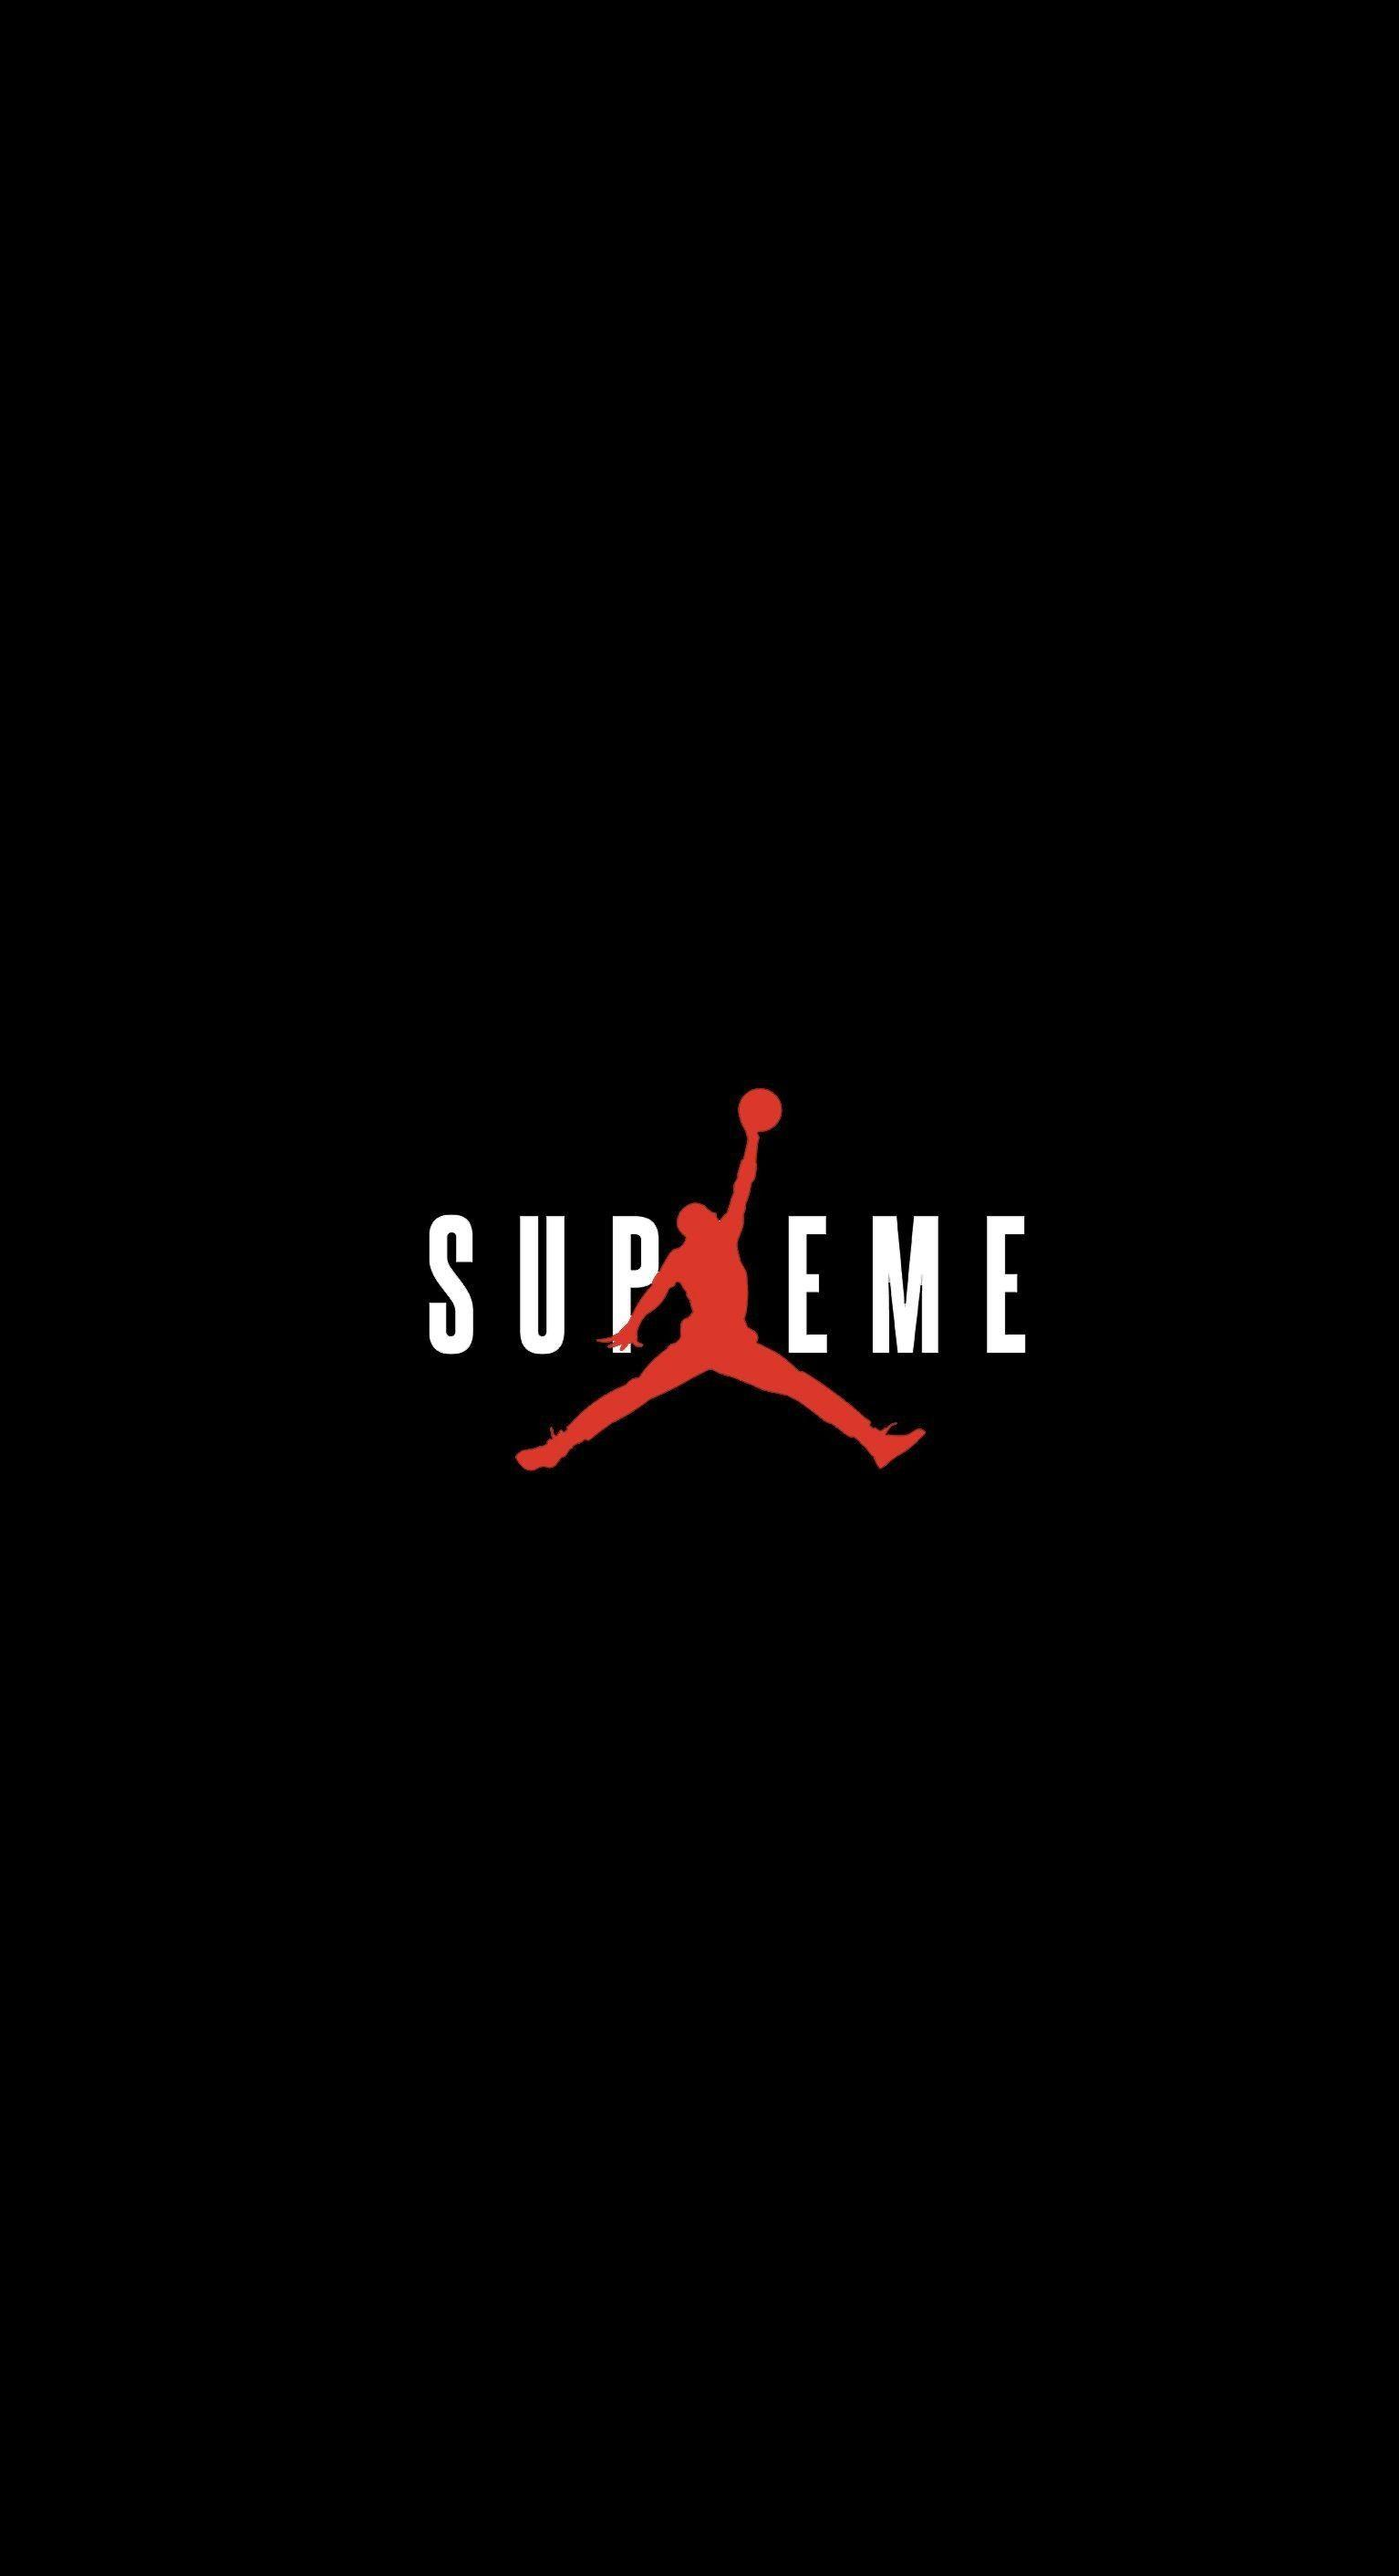 Supreme Gucci Wallpapers Beautiful Supreme X Jordan Wallpapers